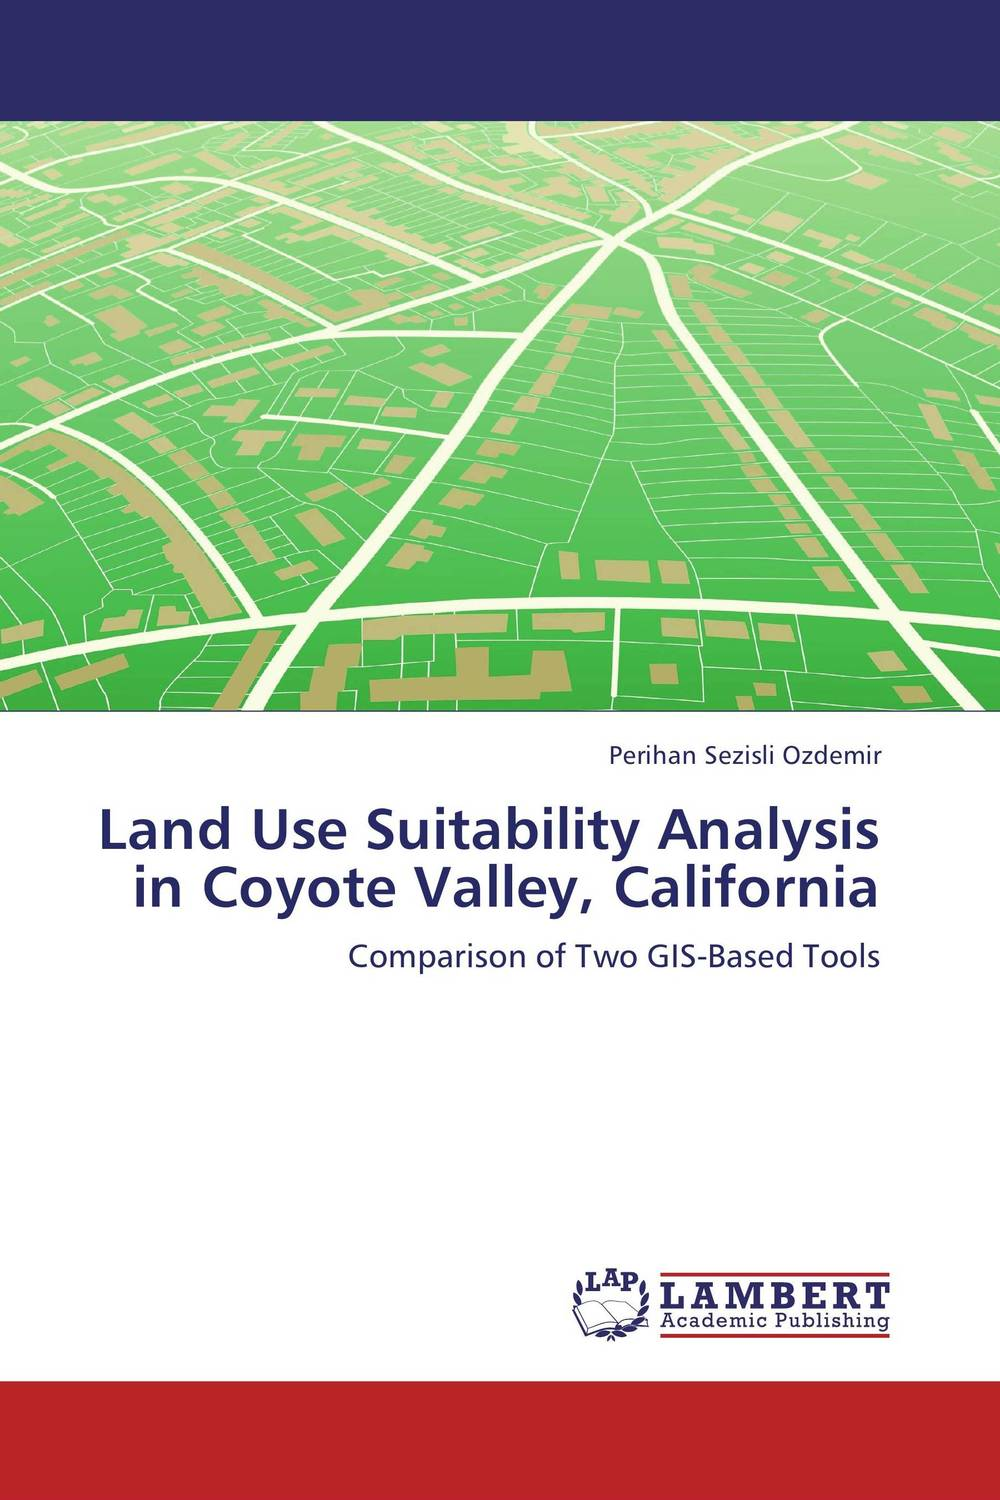 Land Use Suitability Analysis in Coyote Valley, California